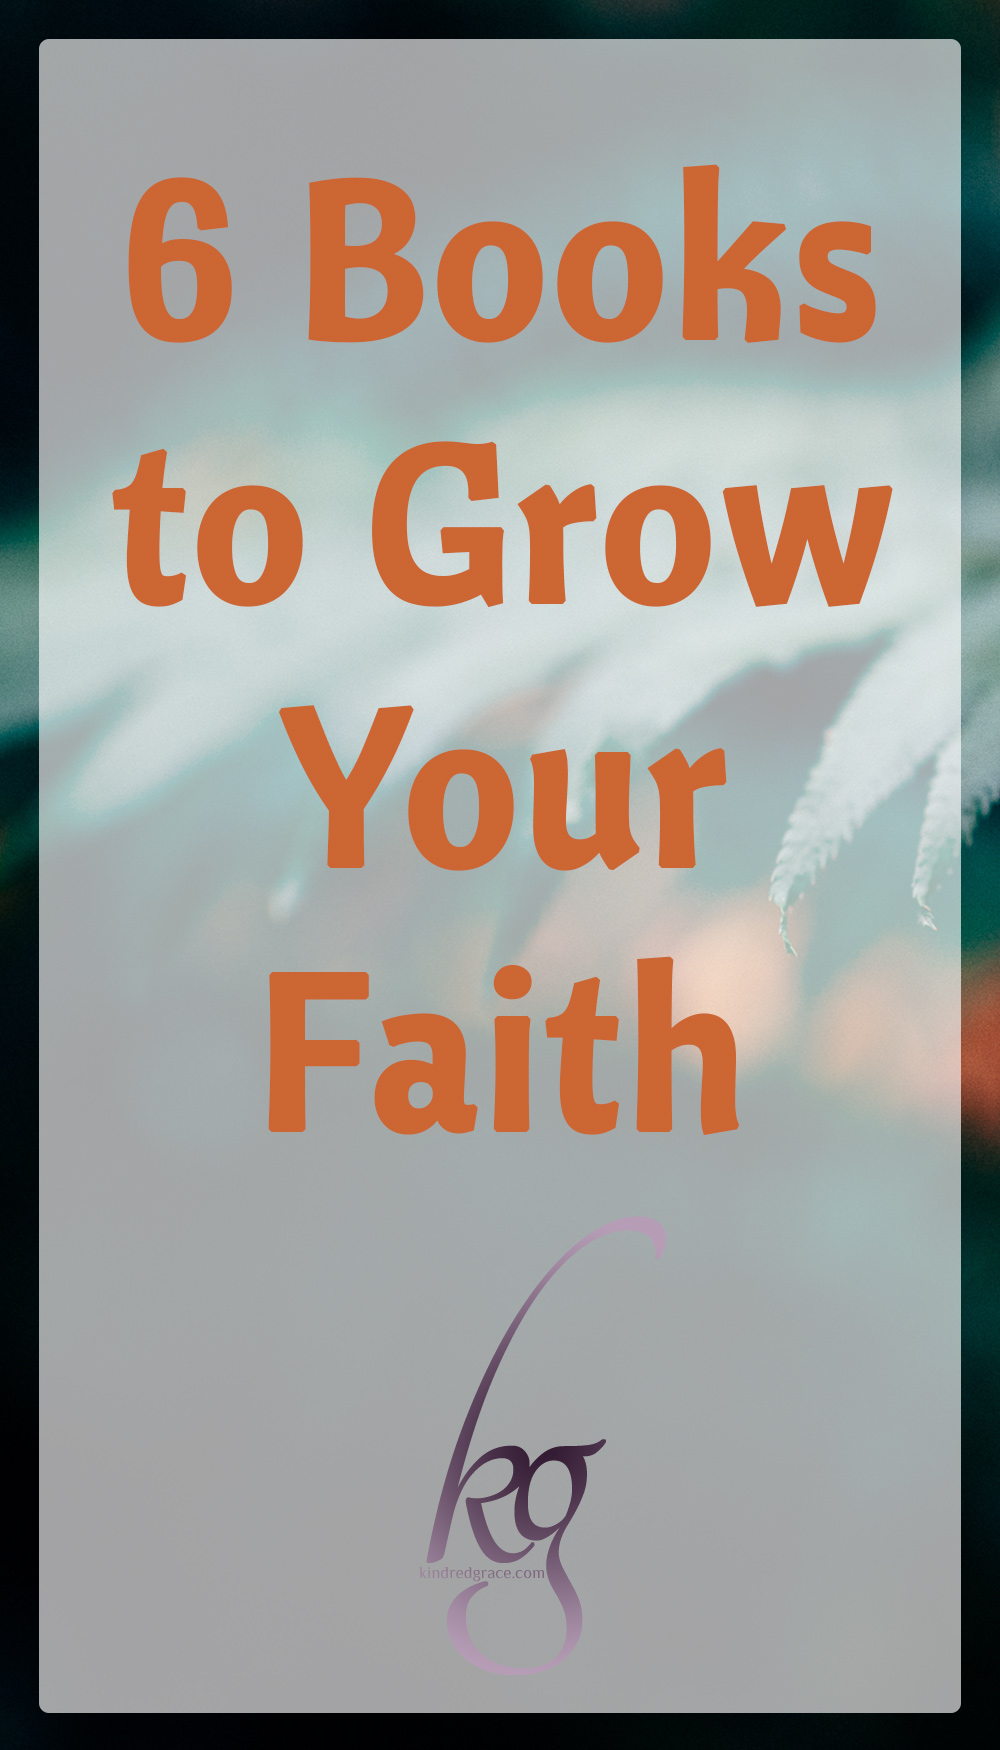 Literature has filled many roles for me throughout my life, including that of friend, fun, and faith-builder. This list focuses on that last role: these are the books that grew my faith. via @KindredGrace